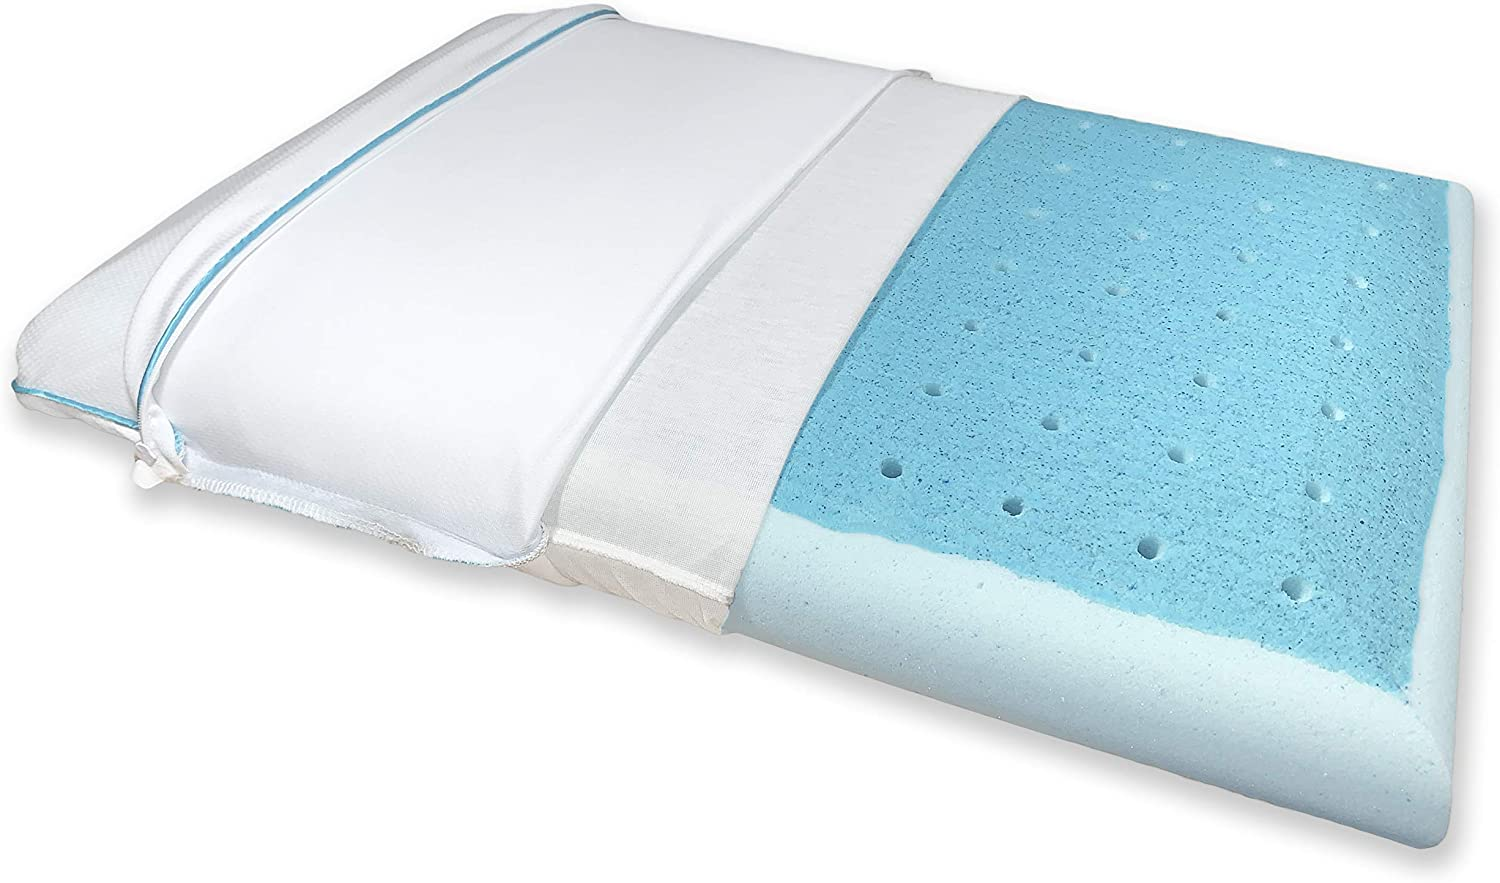 Bluewave Bedding Super Slim CarbonBlue Max Cool Gel Memory Foam Pillow for Stomach and Back Sleepers - Thin and Flat Design for Spinal Alignment, Better Breathing and Enhanced Sleeping (Standard Size)